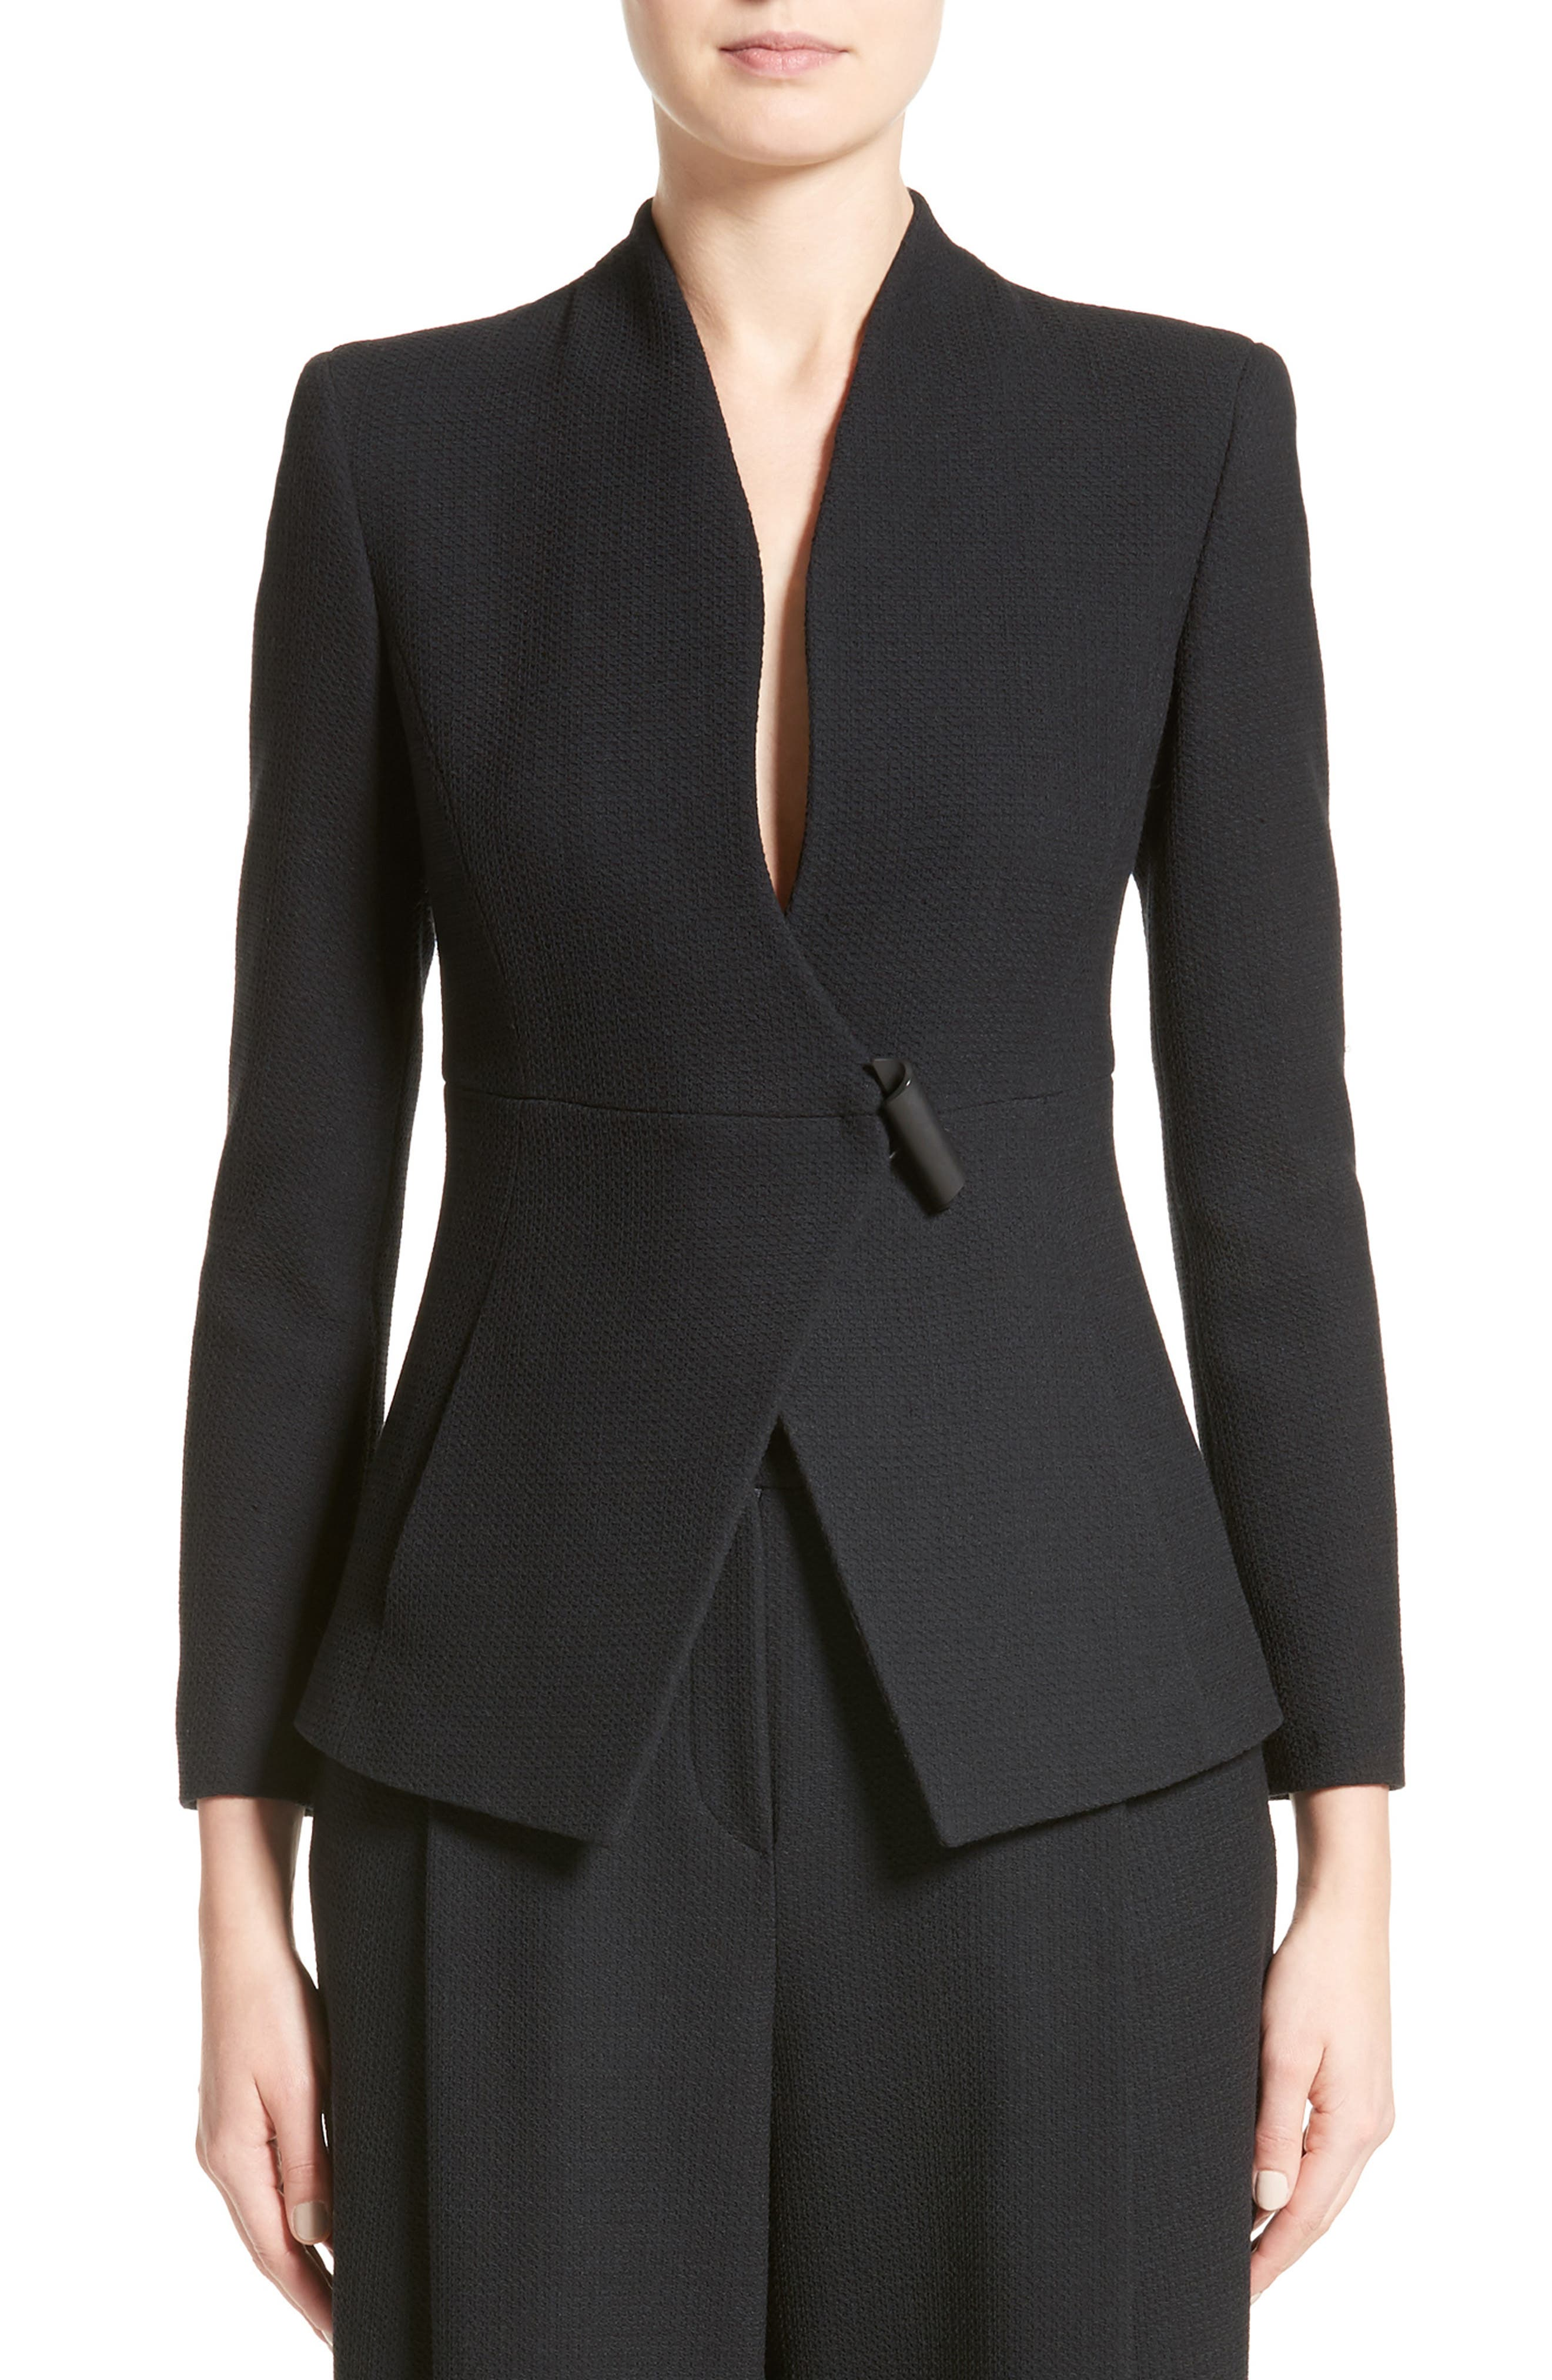 Main Image - Armani Collezioni Textured Stretch Wool Jacket